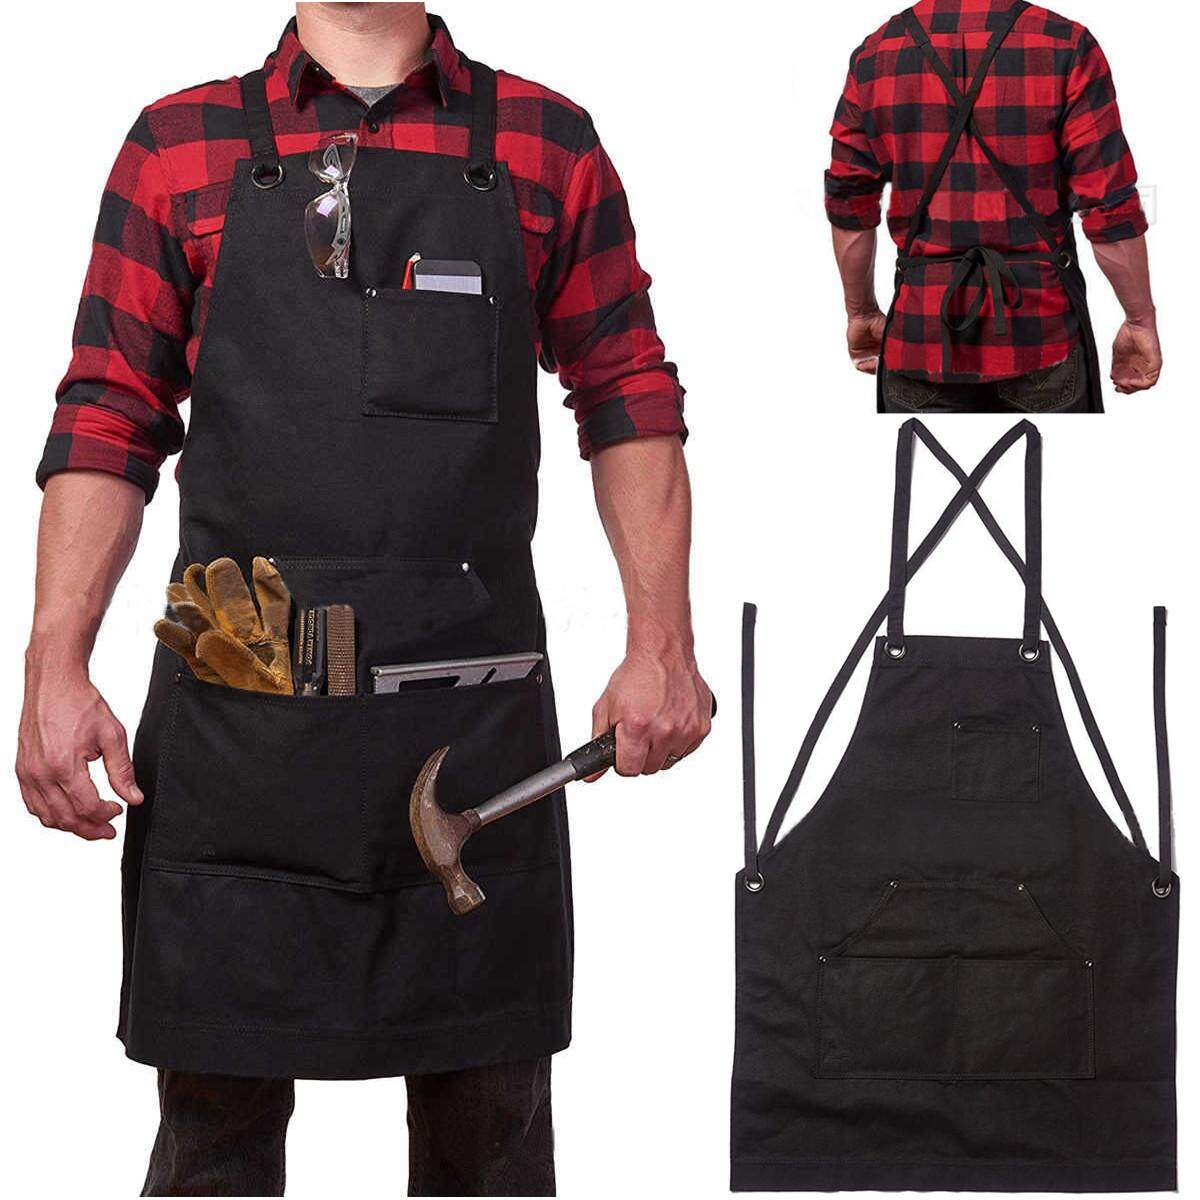 Heavy Duty Waxed Canvas Work Hobby Apron Large Pocket Fits Small to XXL Black Tool 【Free Shipping】